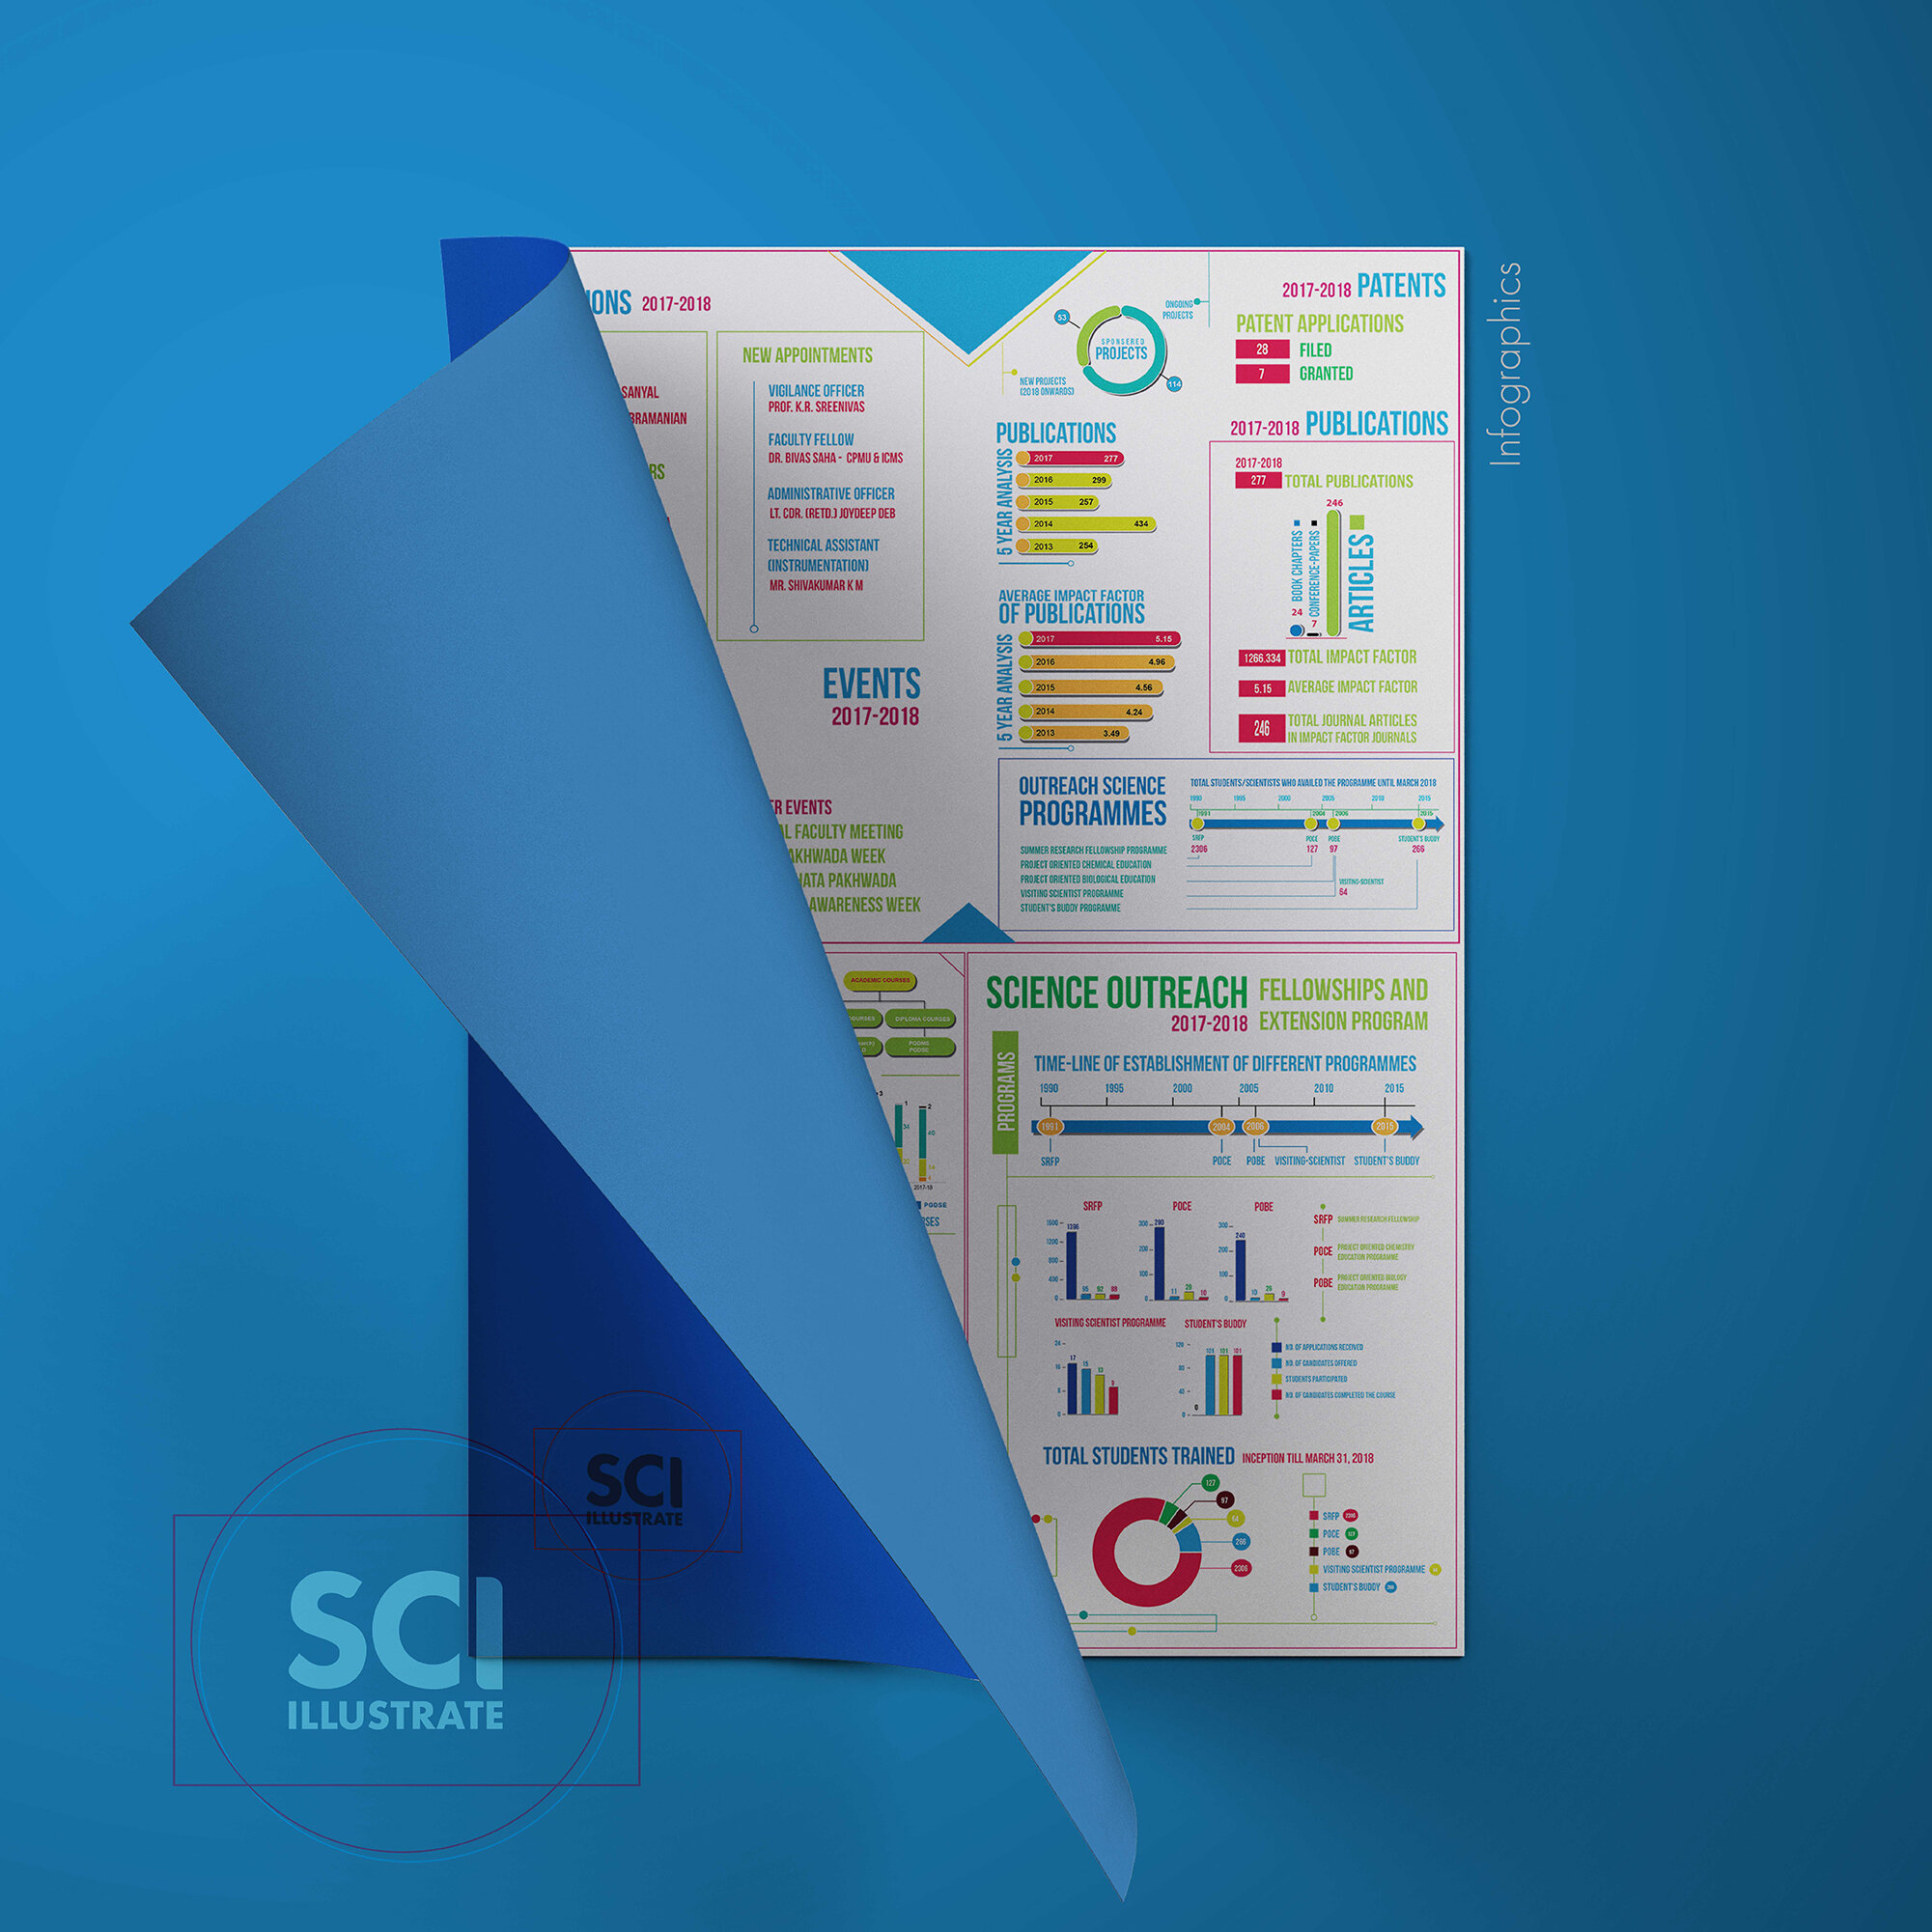 Sci-Illustrate infographics-03-06 02.jpg